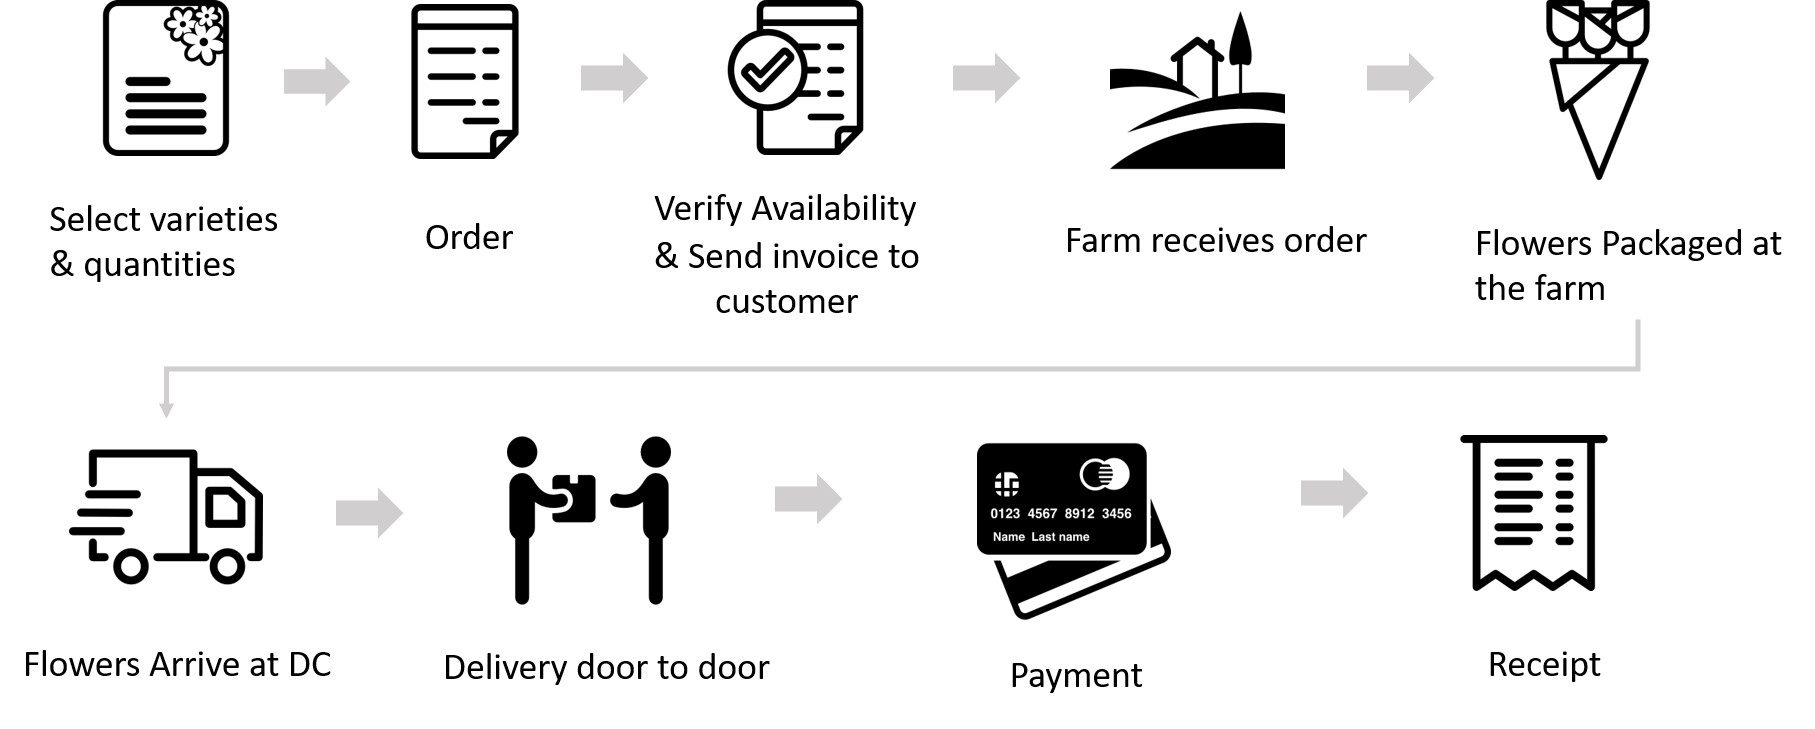 order process image